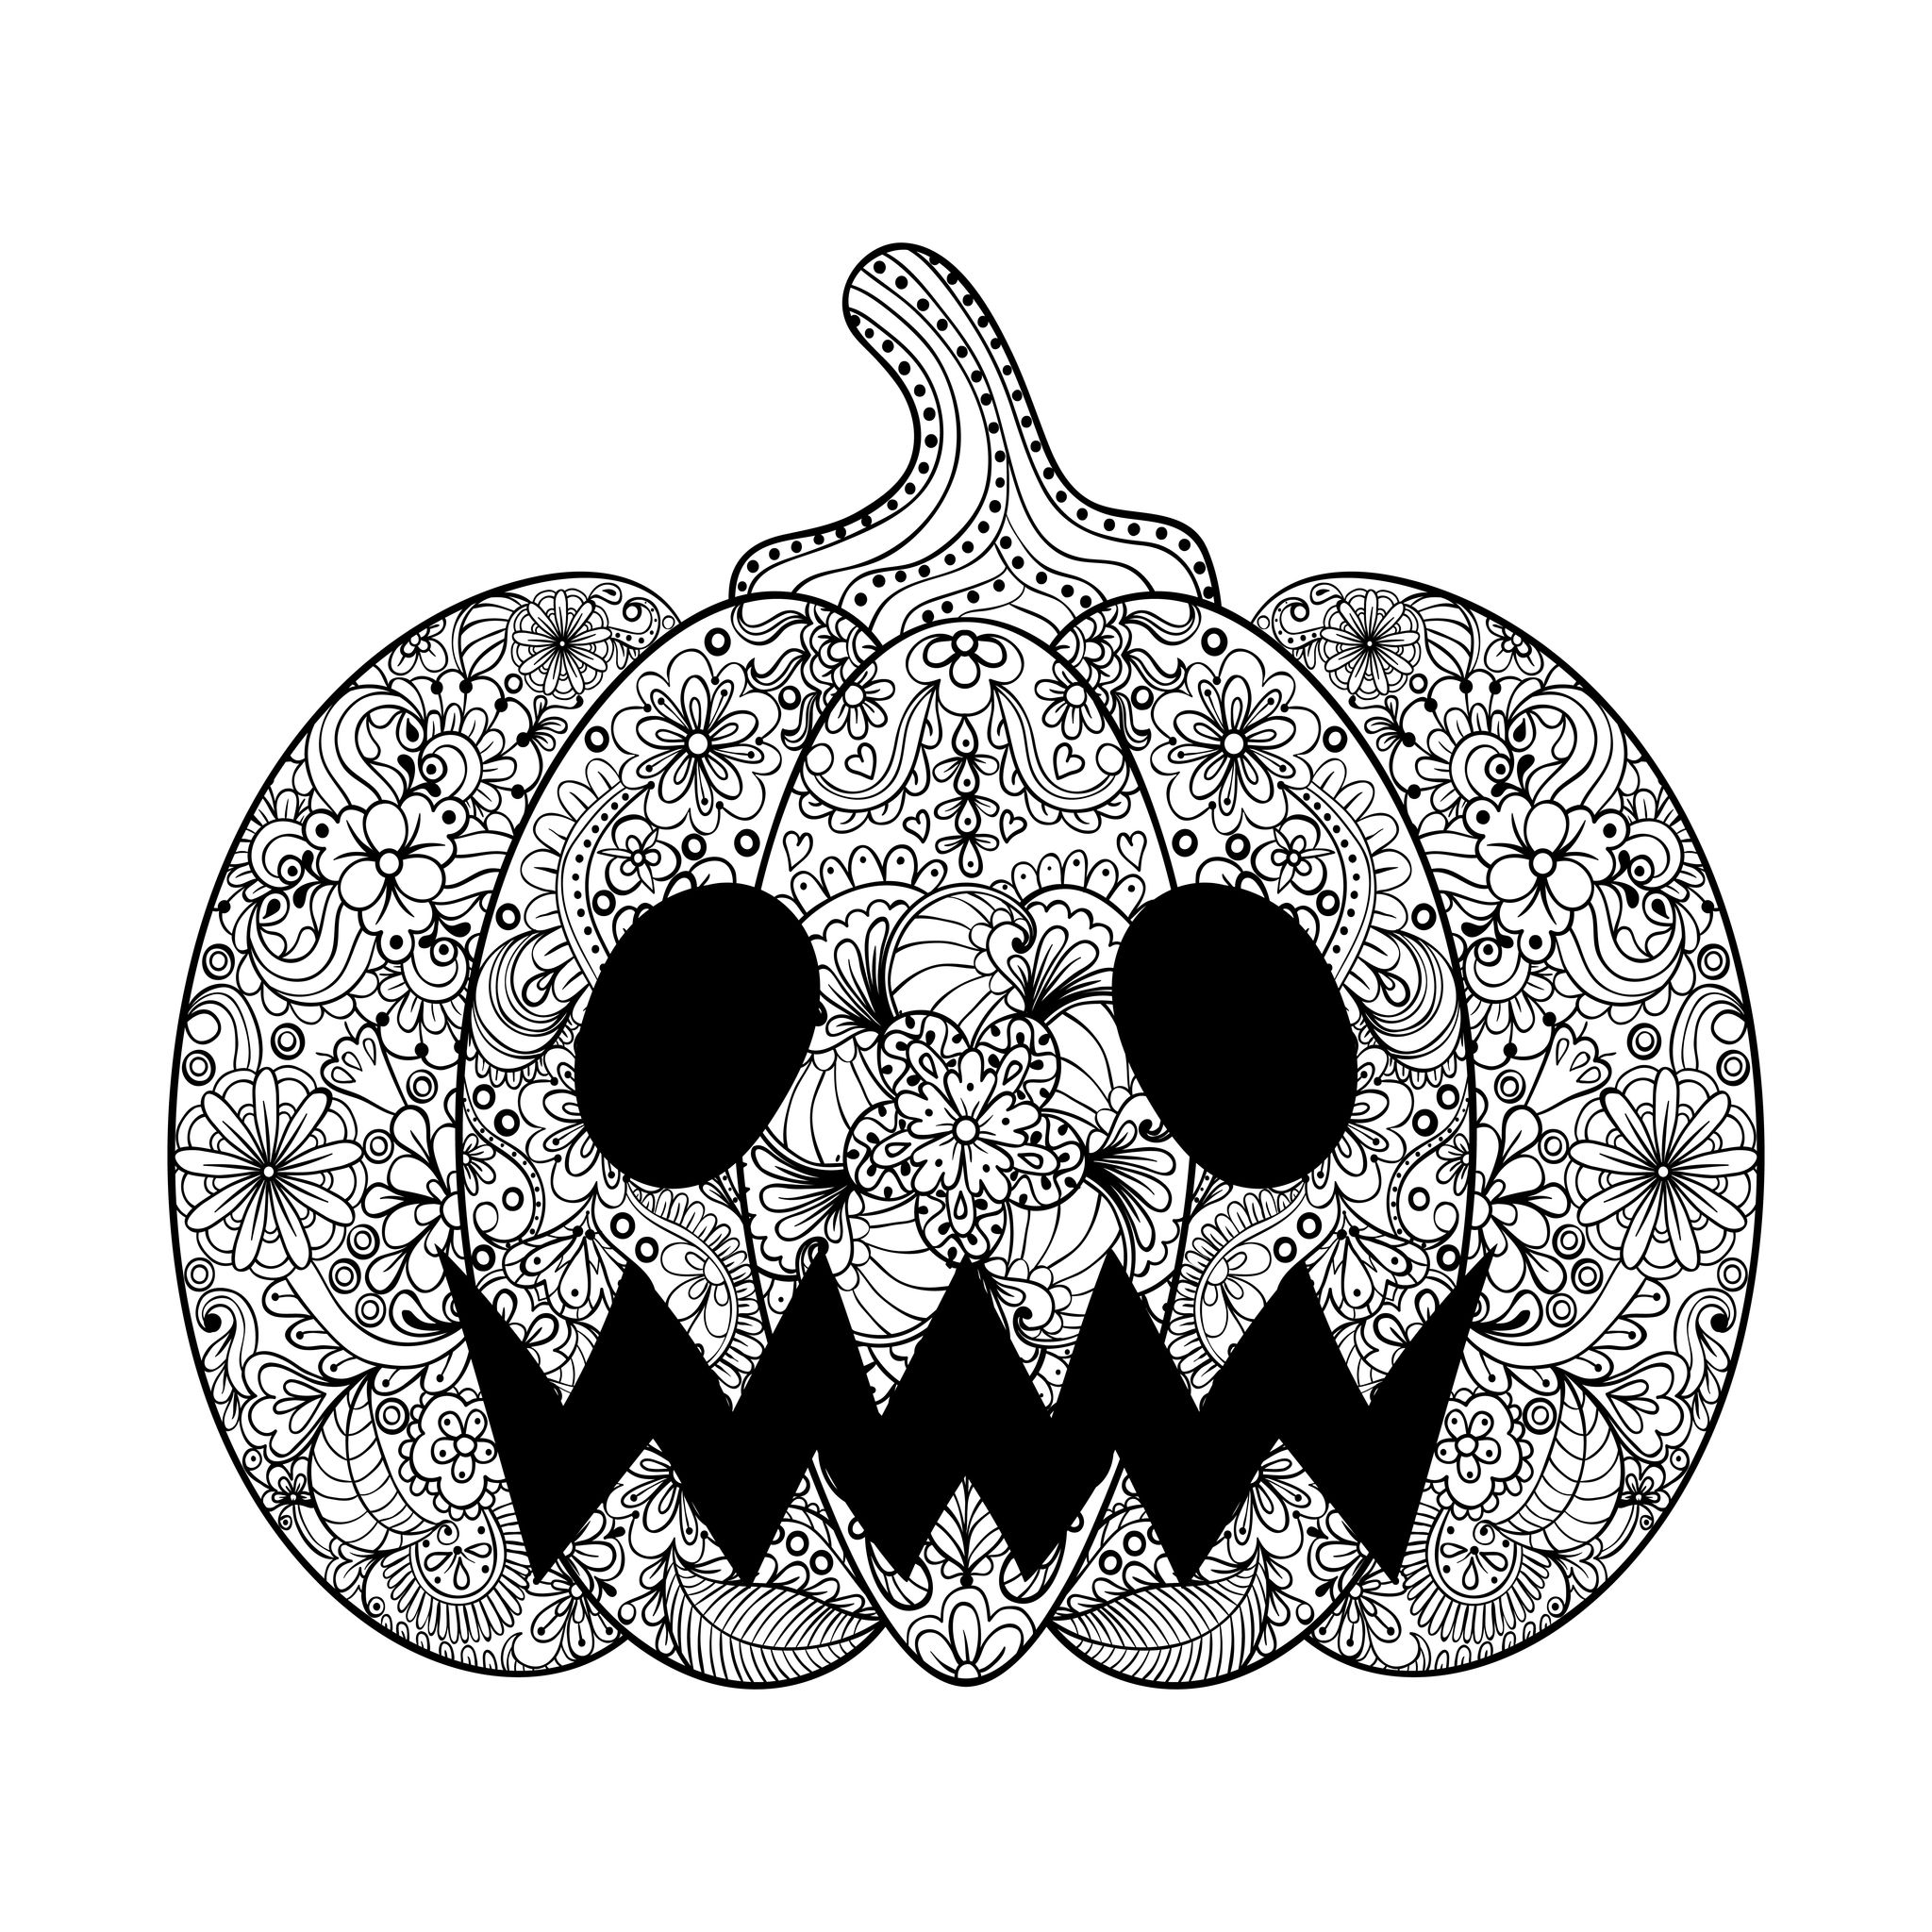 Pumpkin Illustration An Halloween Coloring Page Drawn In Zentangle Style